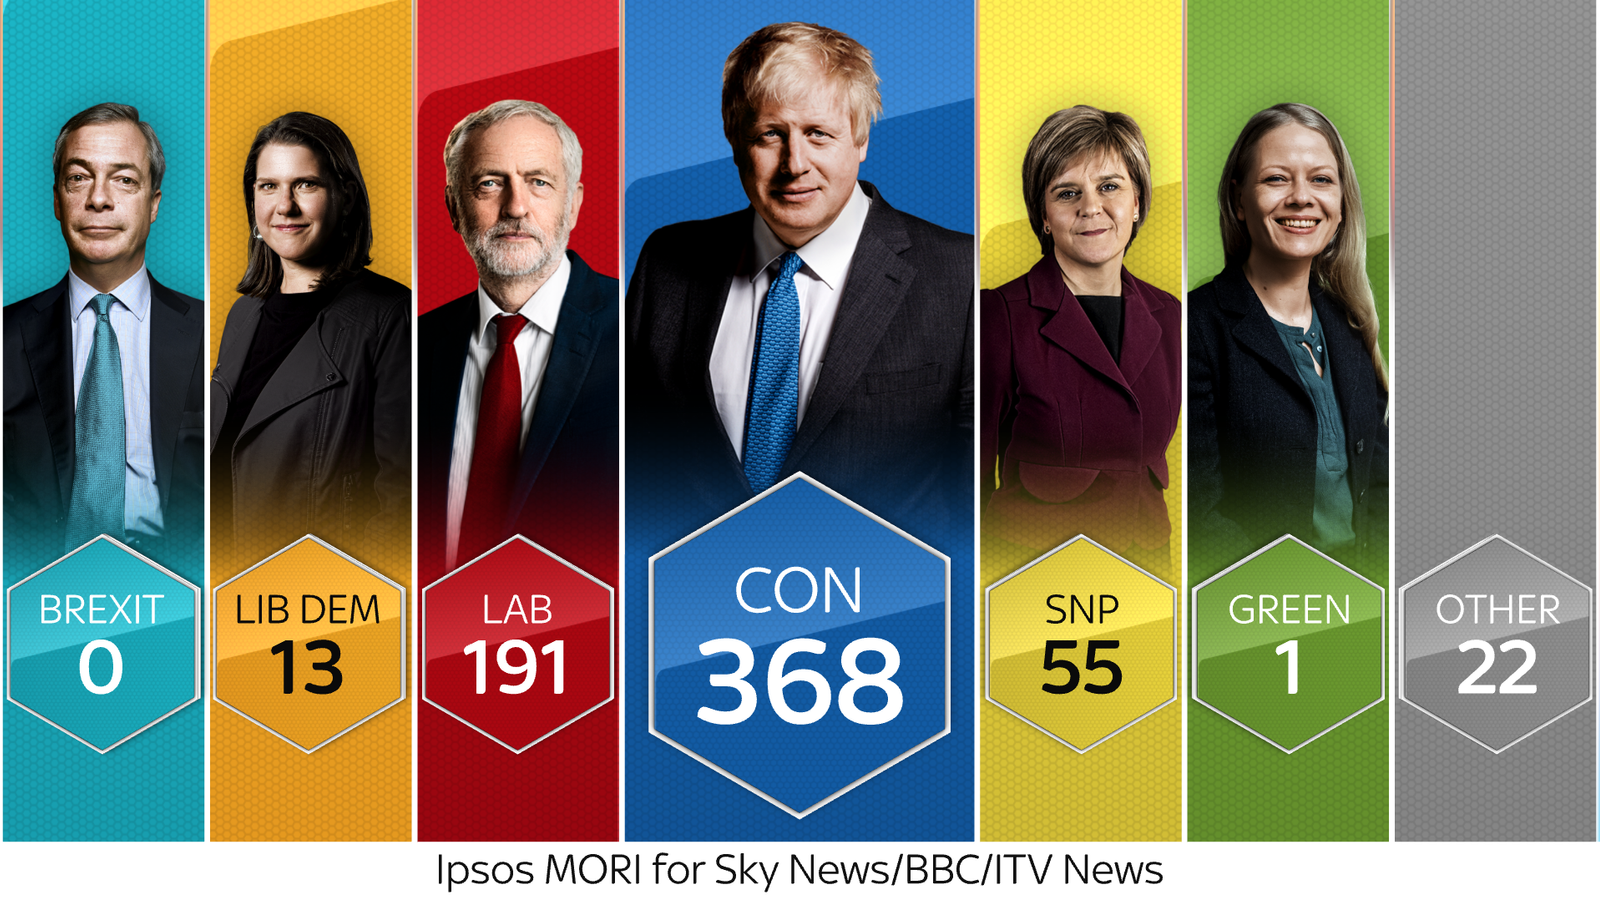 skynews-general-election-exit-poll_48645